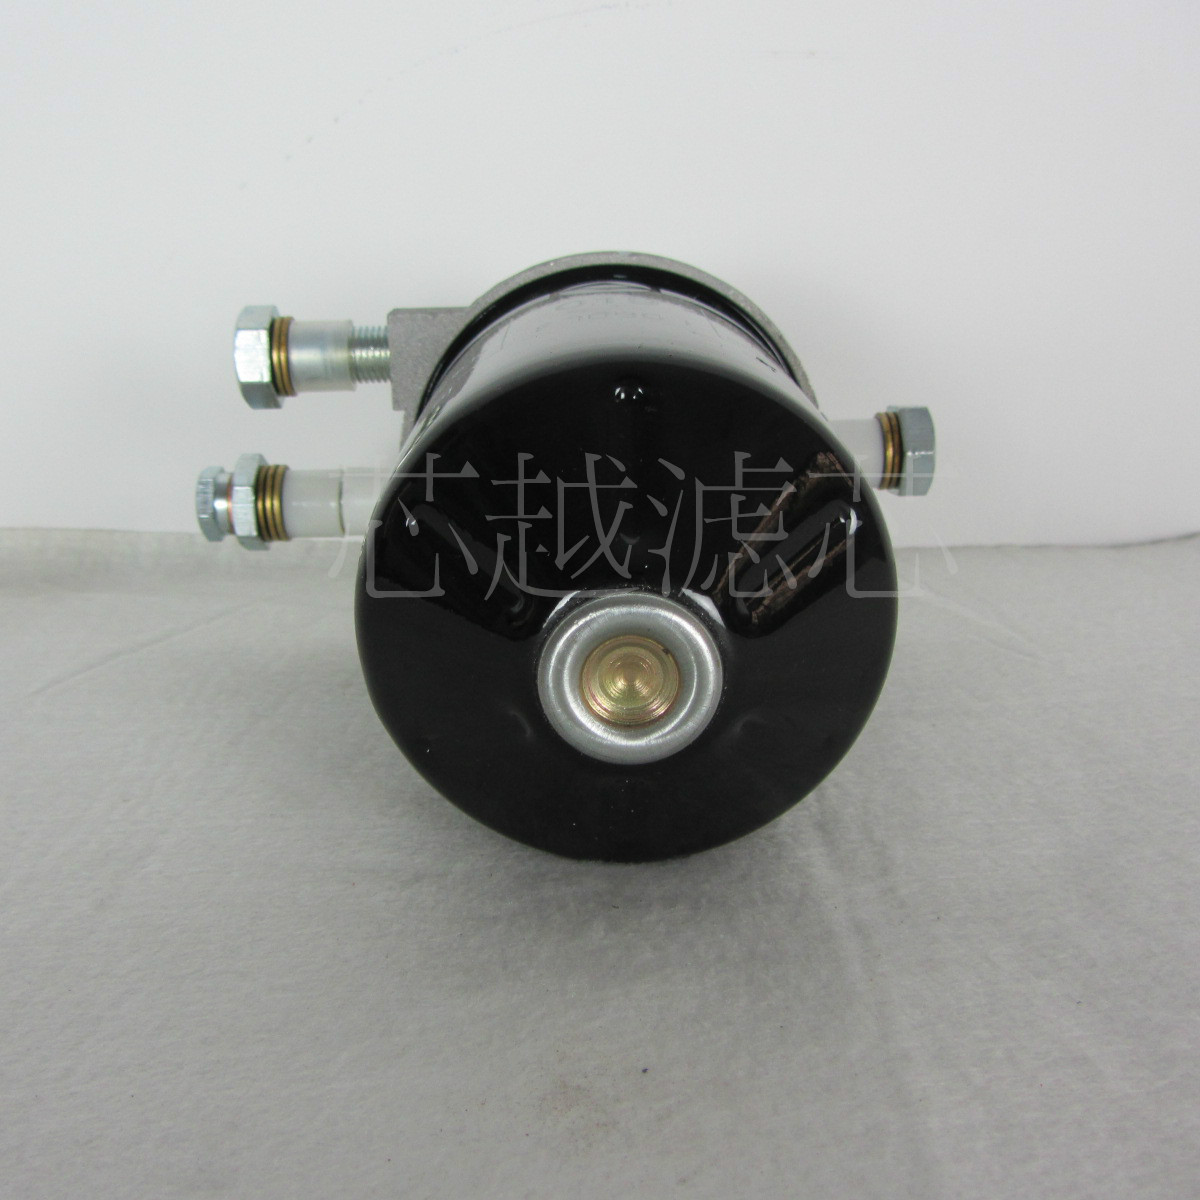 Usd 2205 Diesel Fuel Filter Assembly C0810b 0000 6135 Type